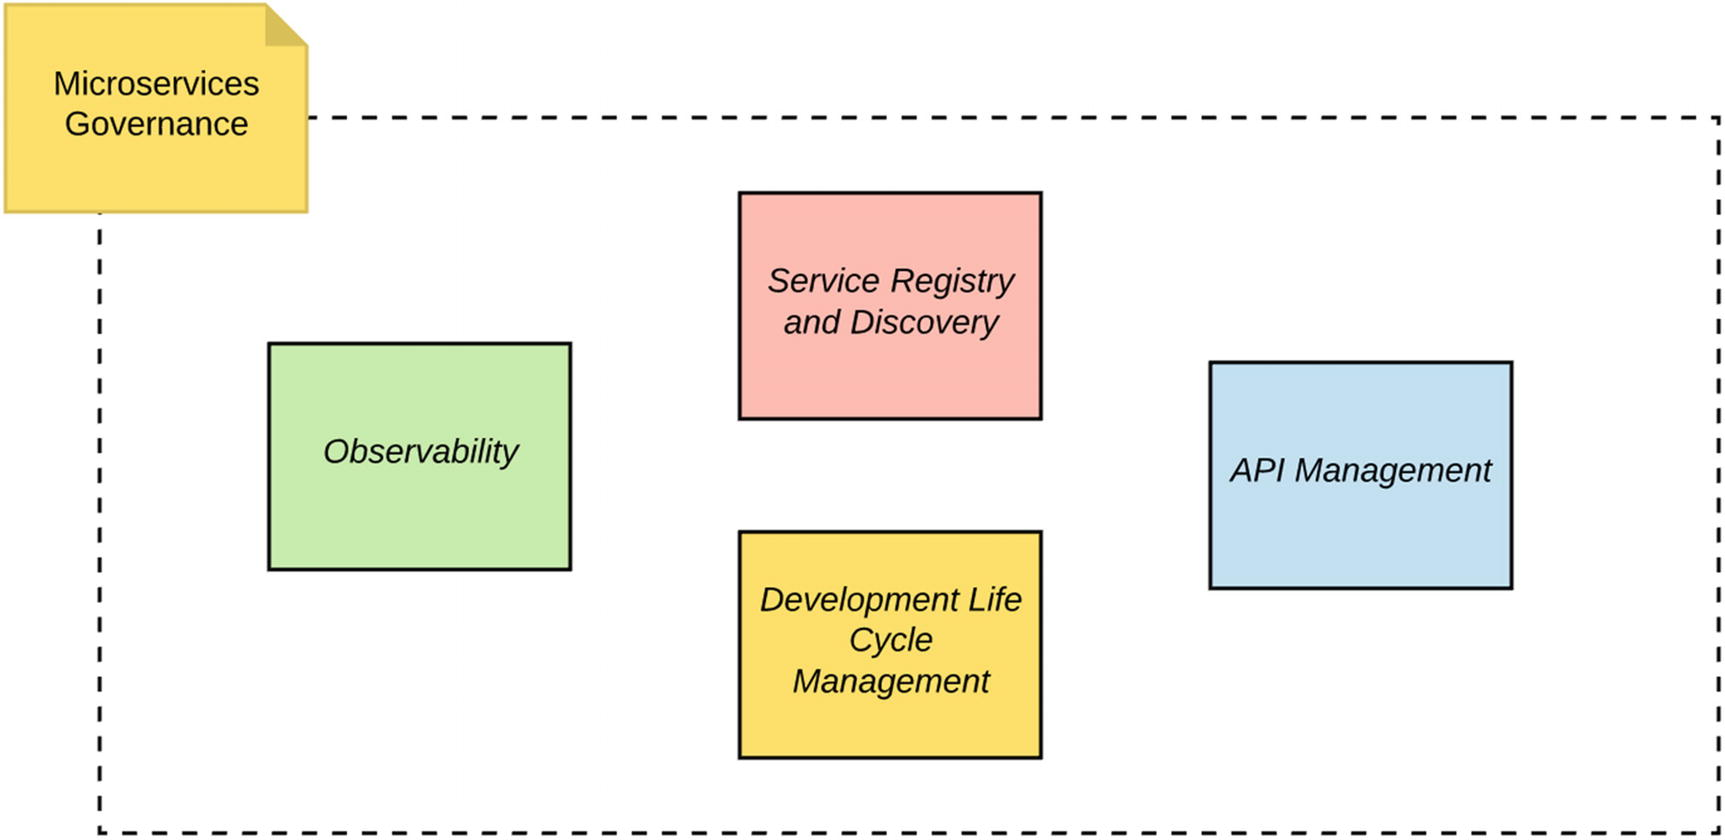 Microservices Governance | SpringerLink